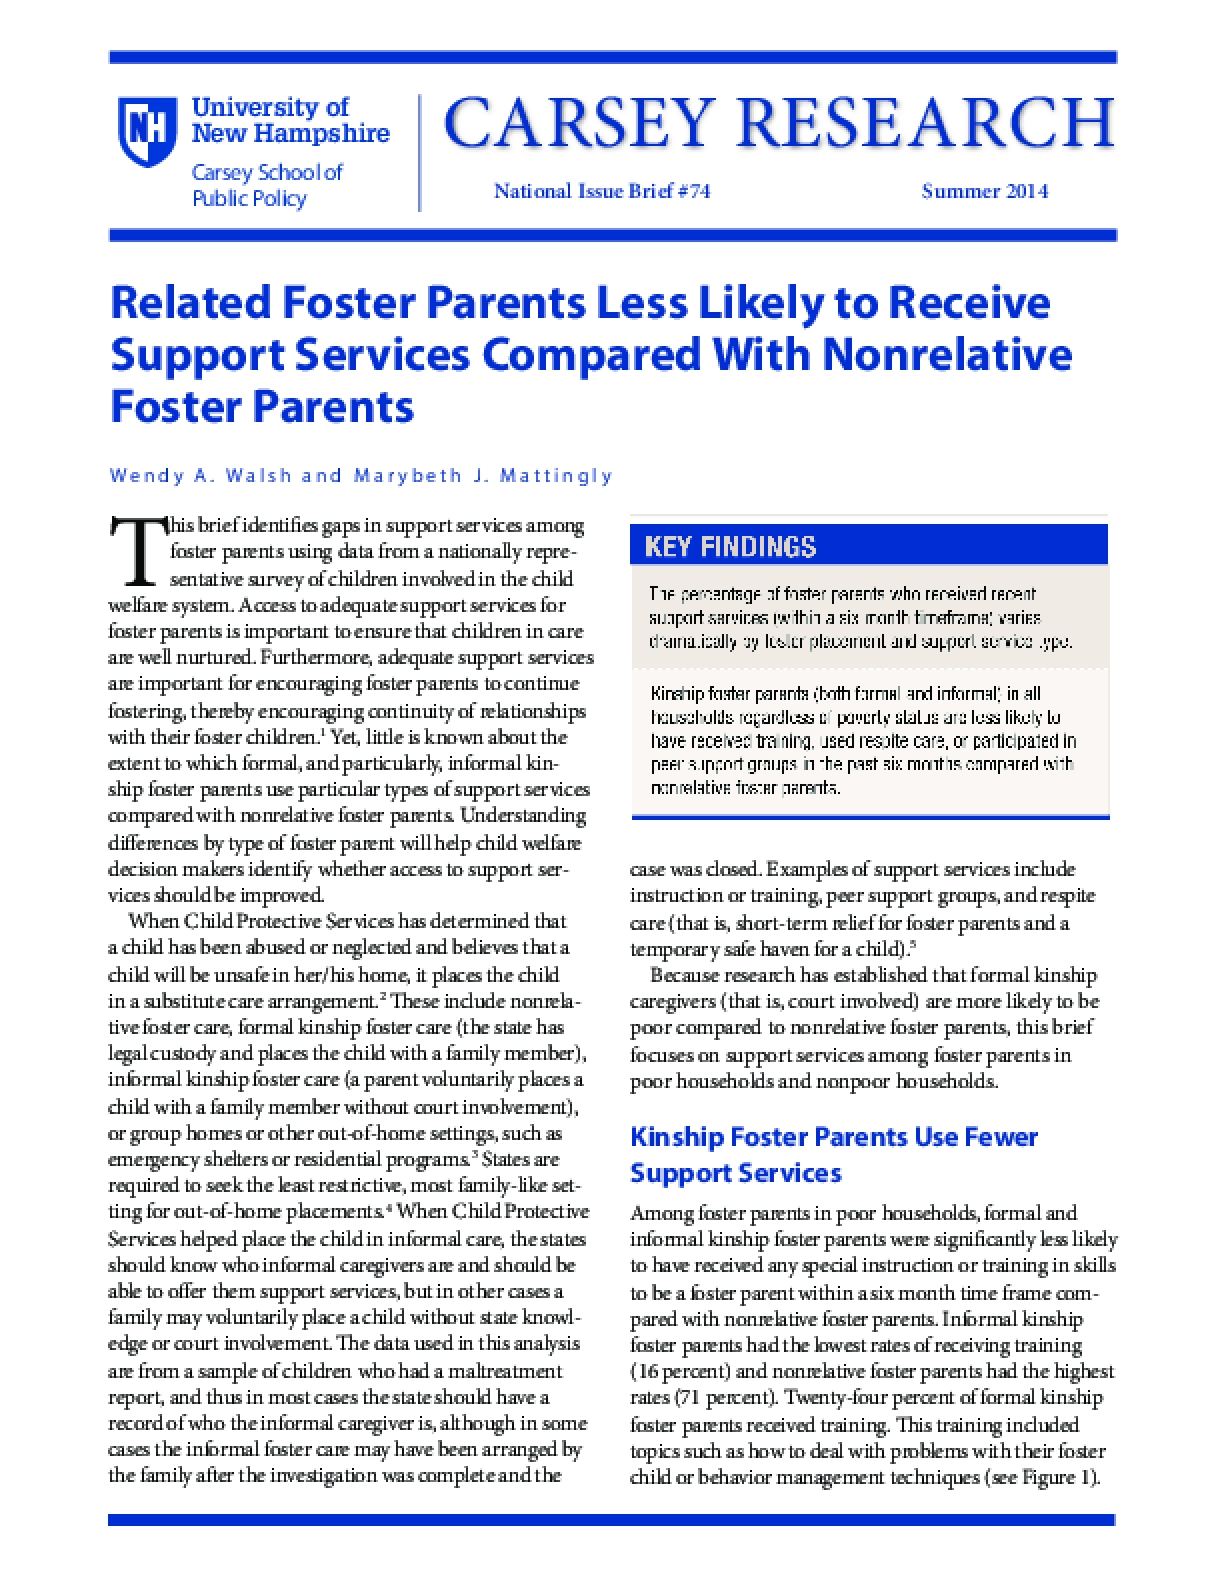 Related Foster Parents Less Likely to Receive Support Services Compared With Nonrelative Foster Parents